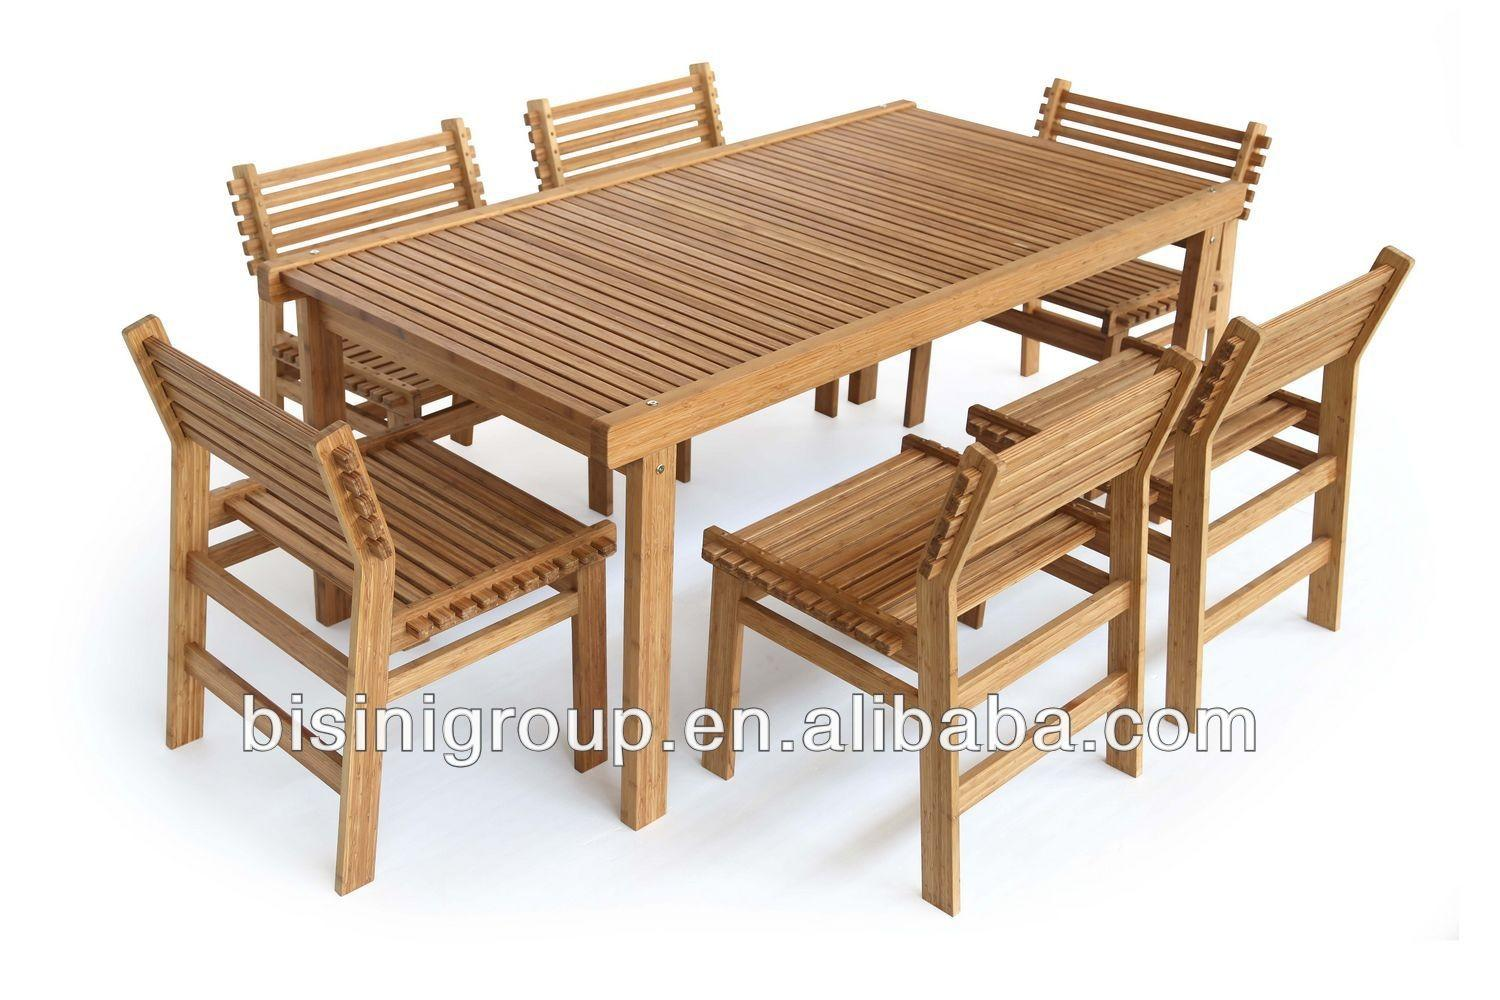 Wholesale Bamboo Furniture Outdoor Dining Square